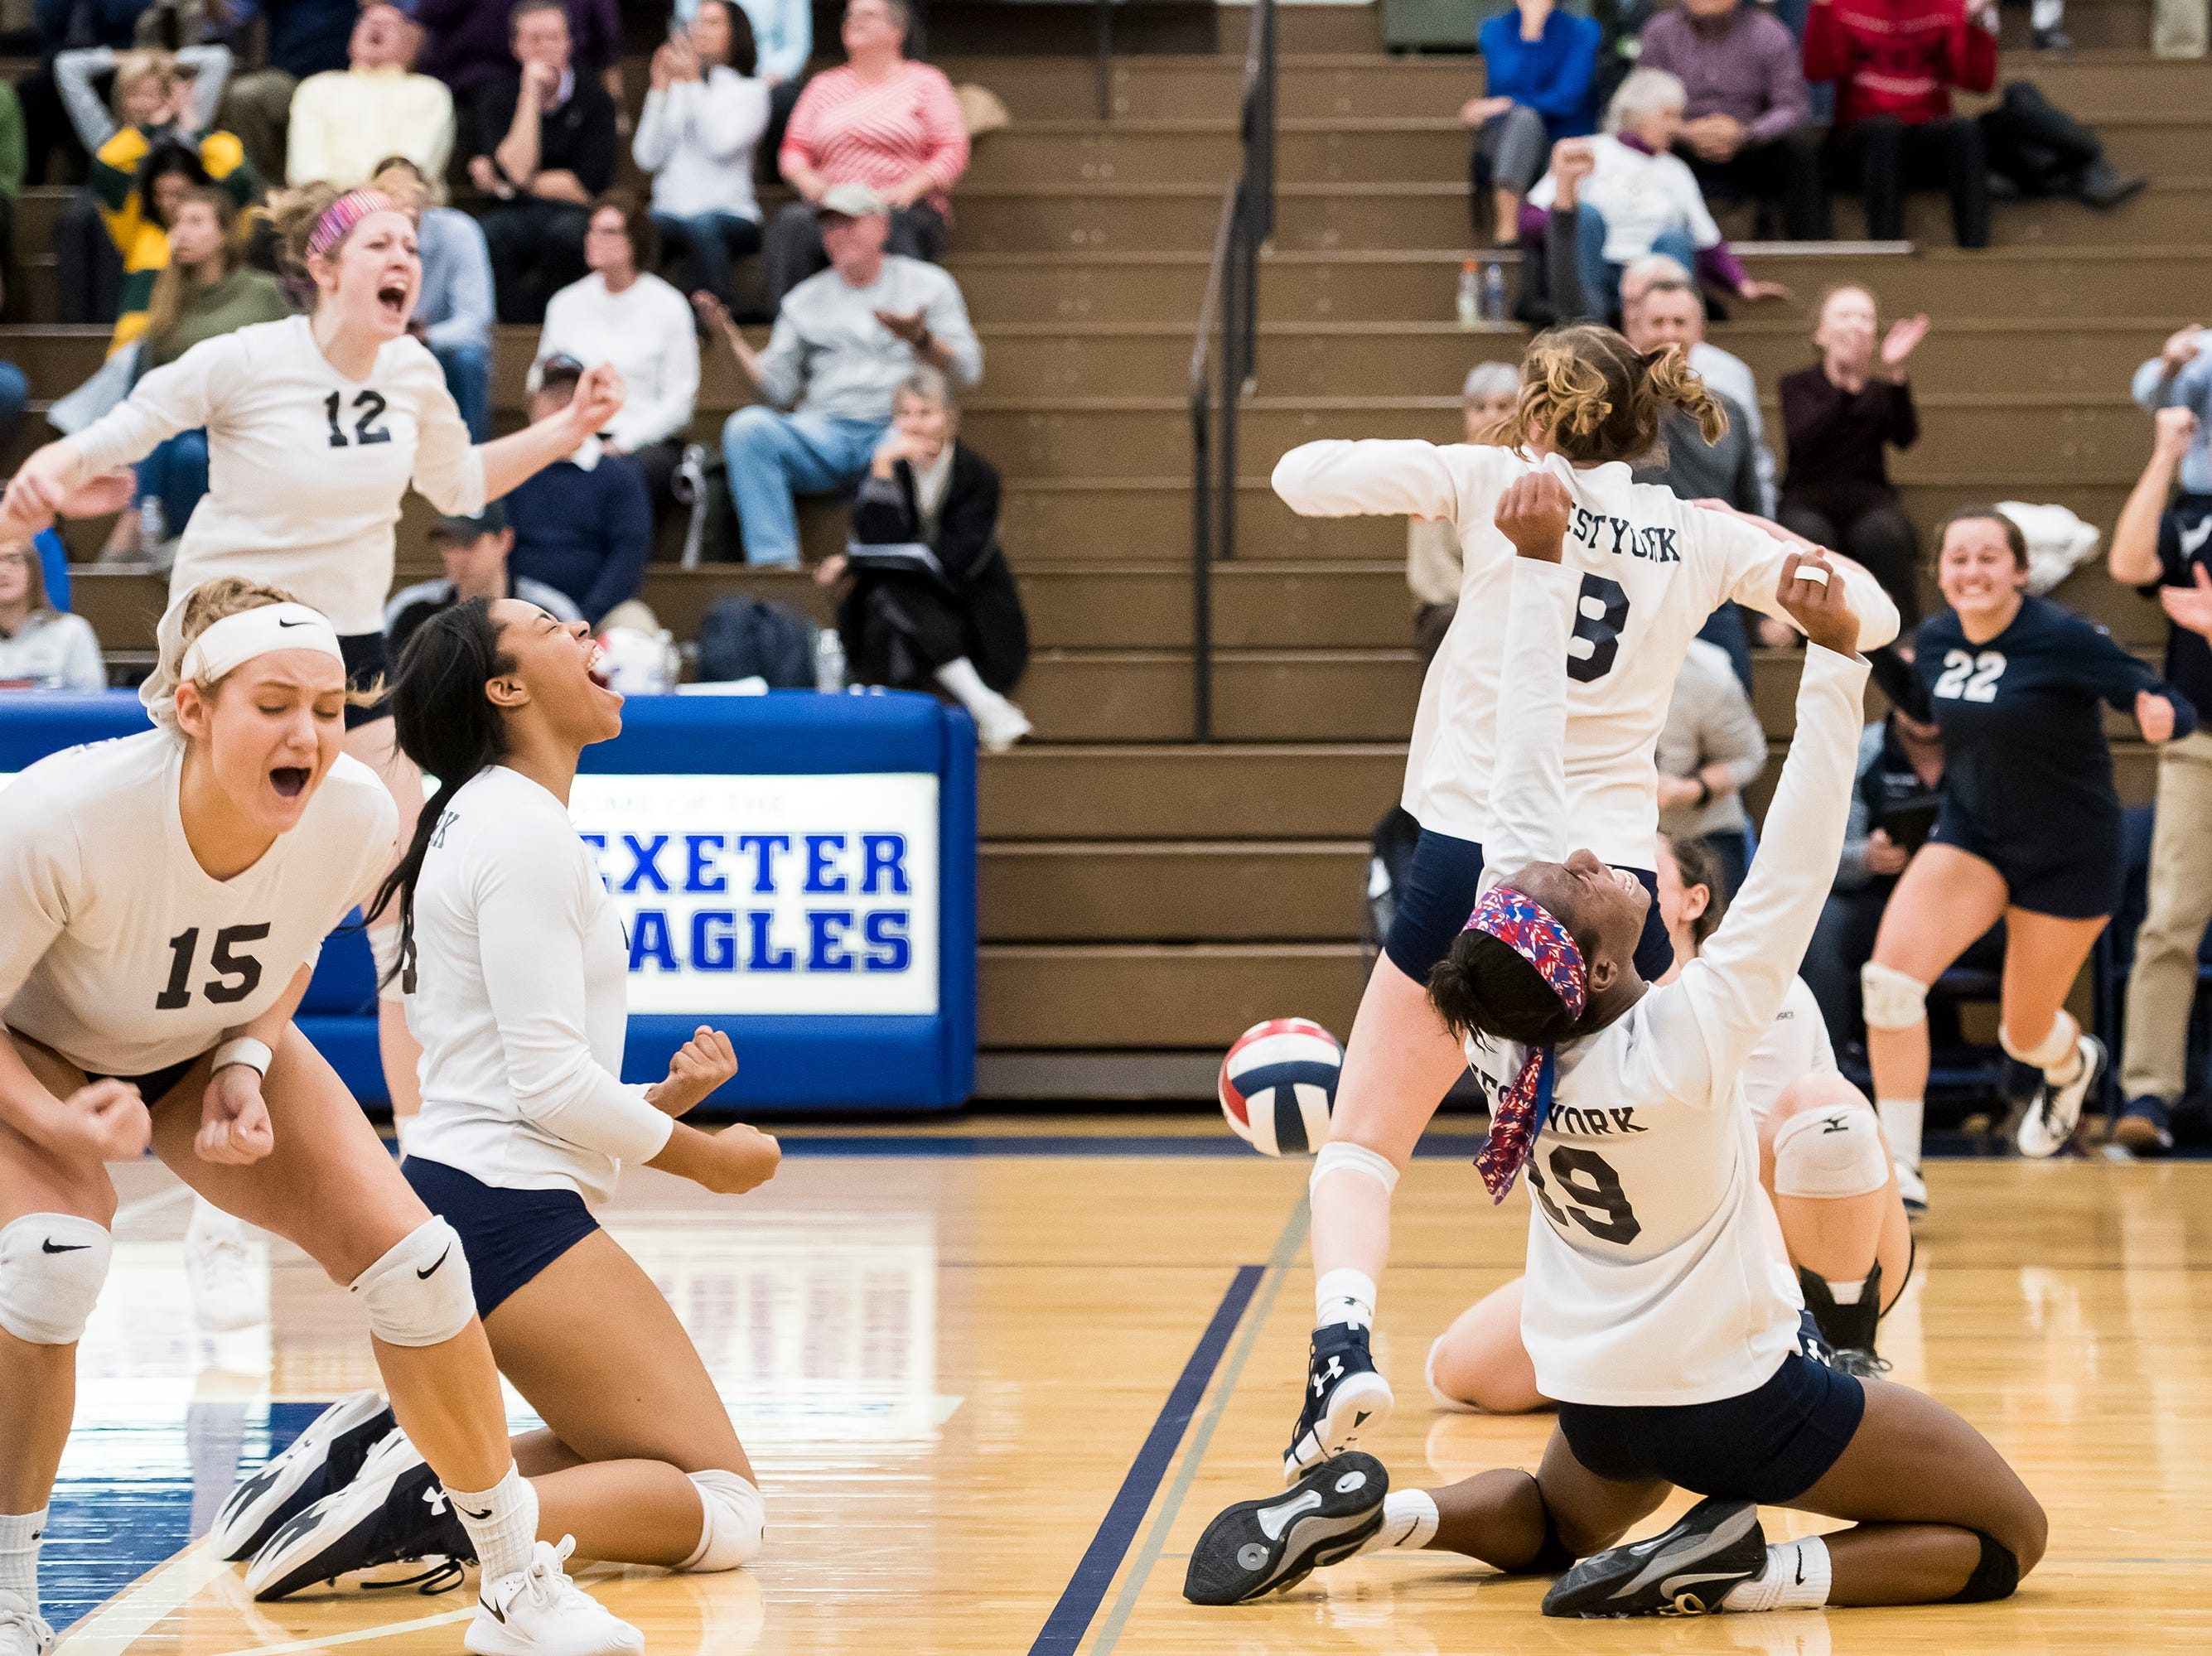 West York players celebrate defeating Allentown Central Catholic in a PIAA 3A semifinal game at Exeter Township High School in Reading on Tuesday, November 13, 2018.